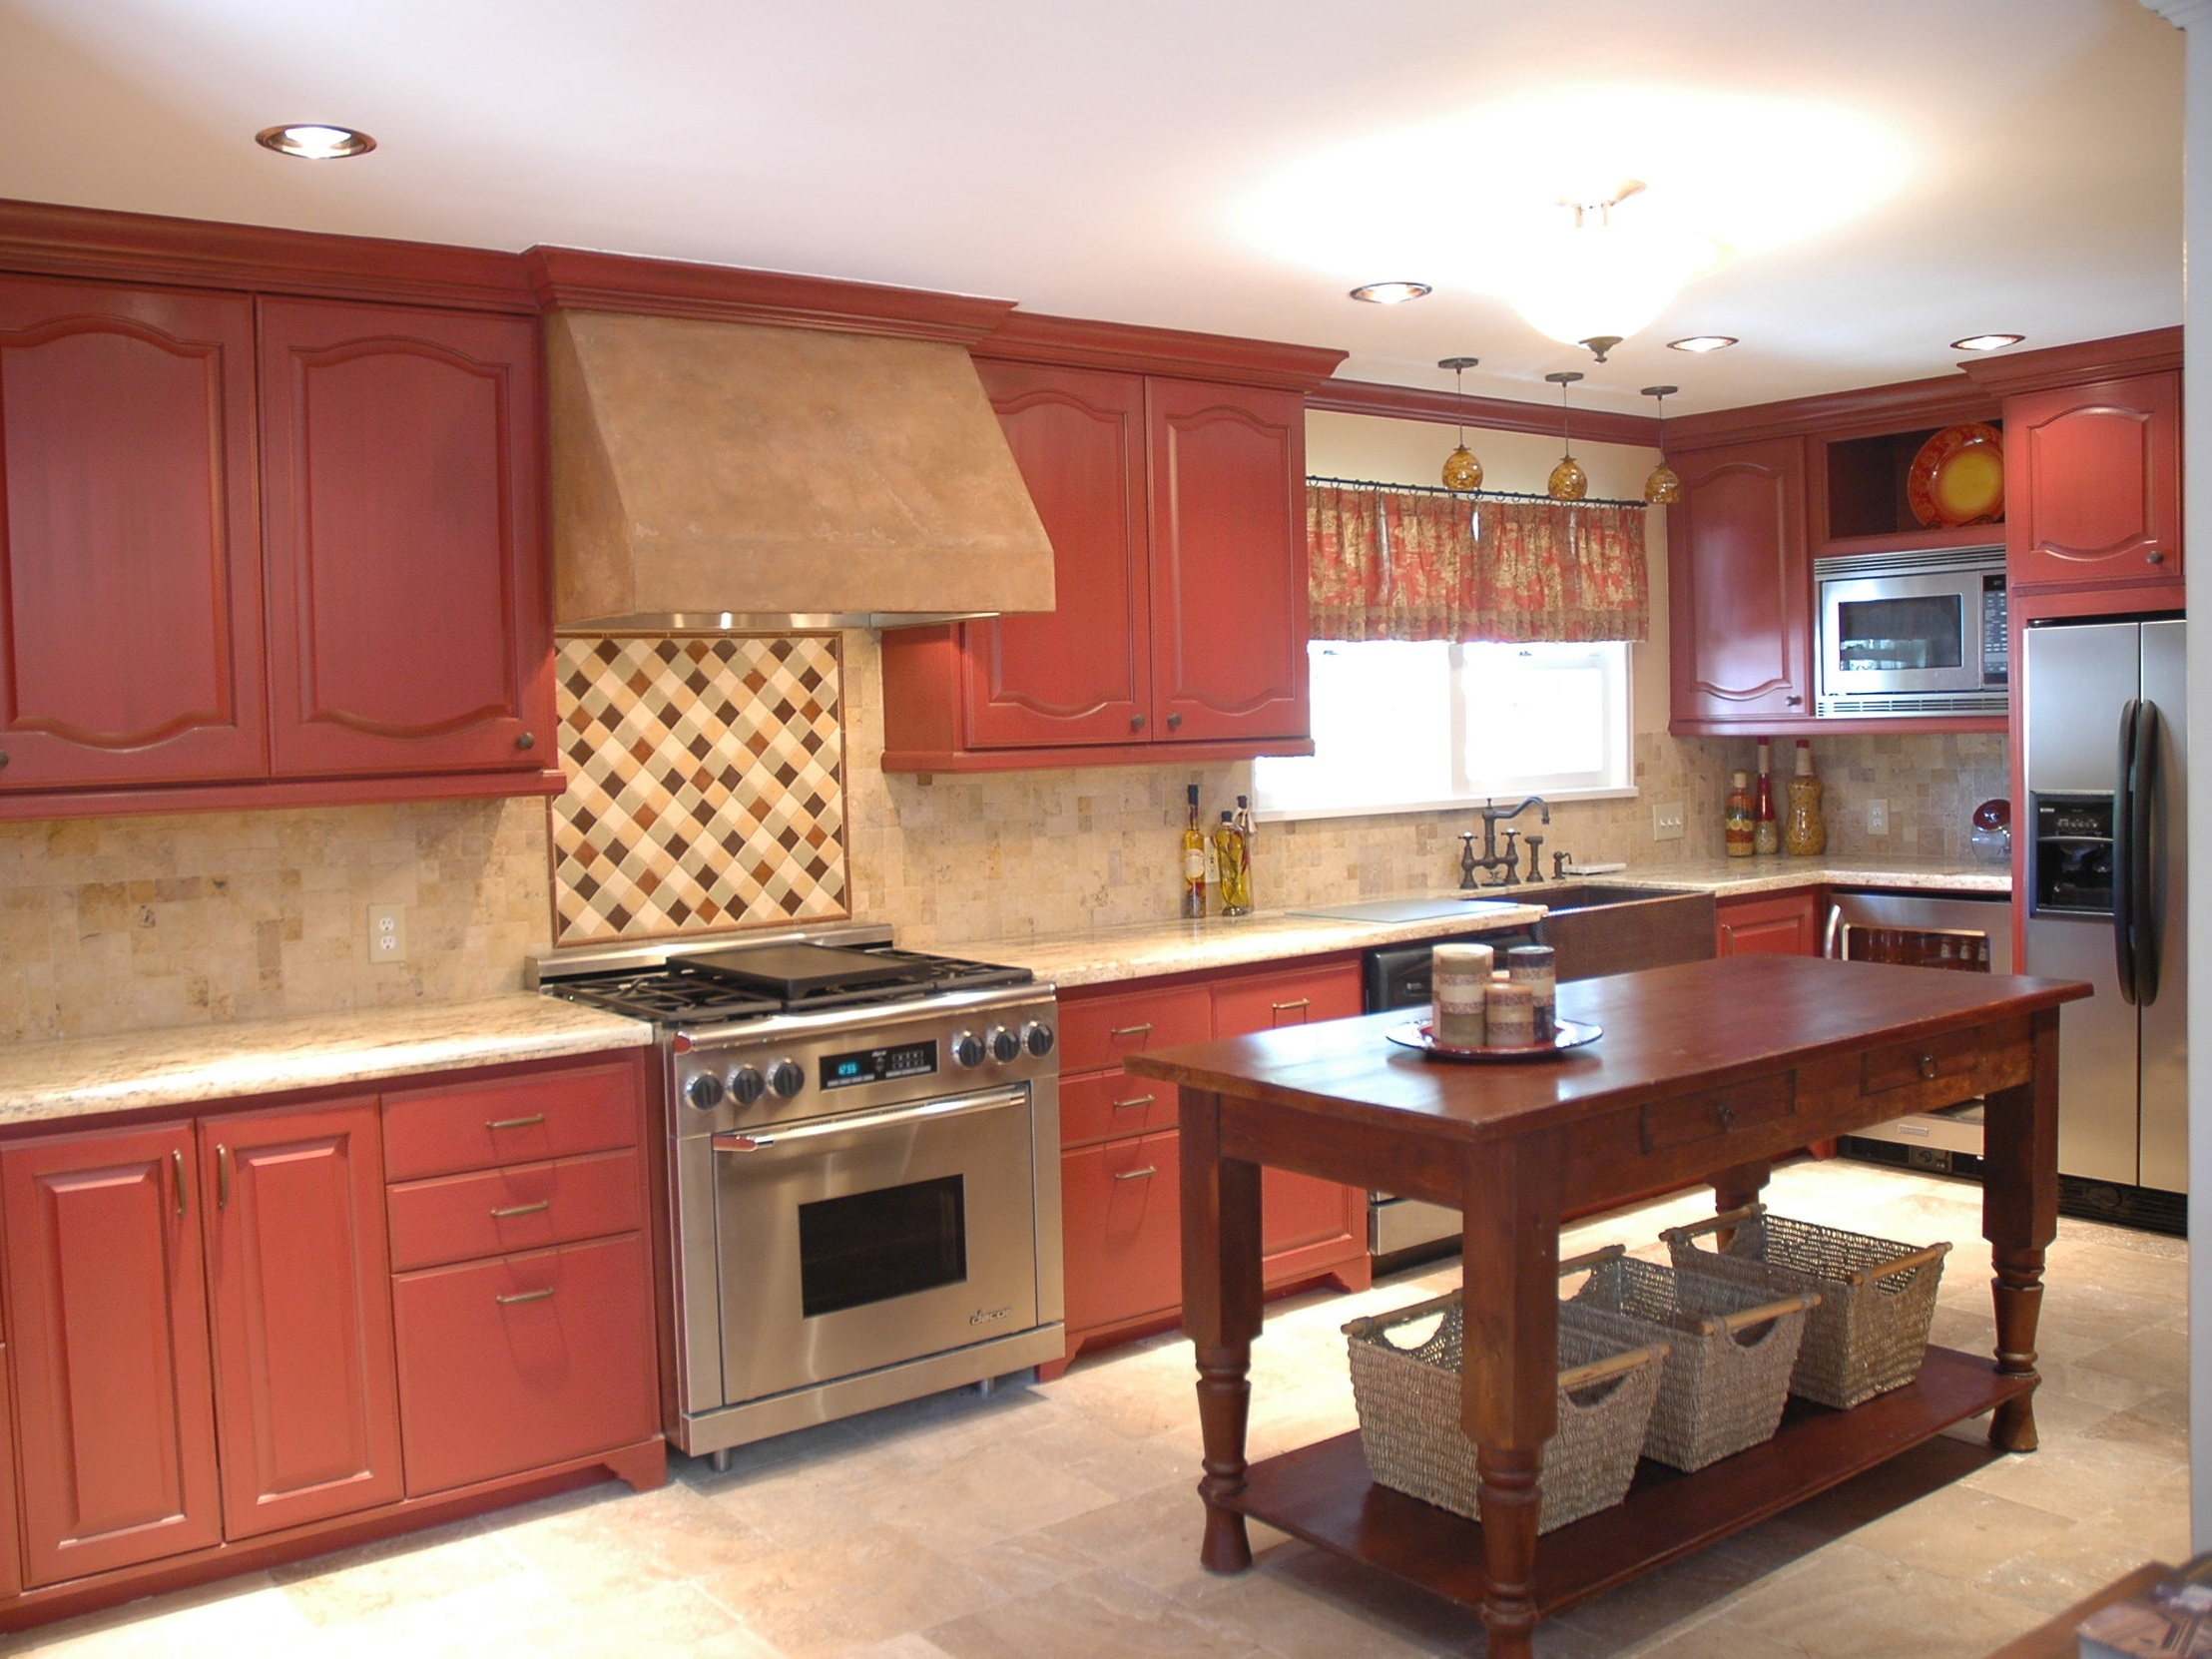 WEST UNIVERSITY TUSCAN KITCHEN -